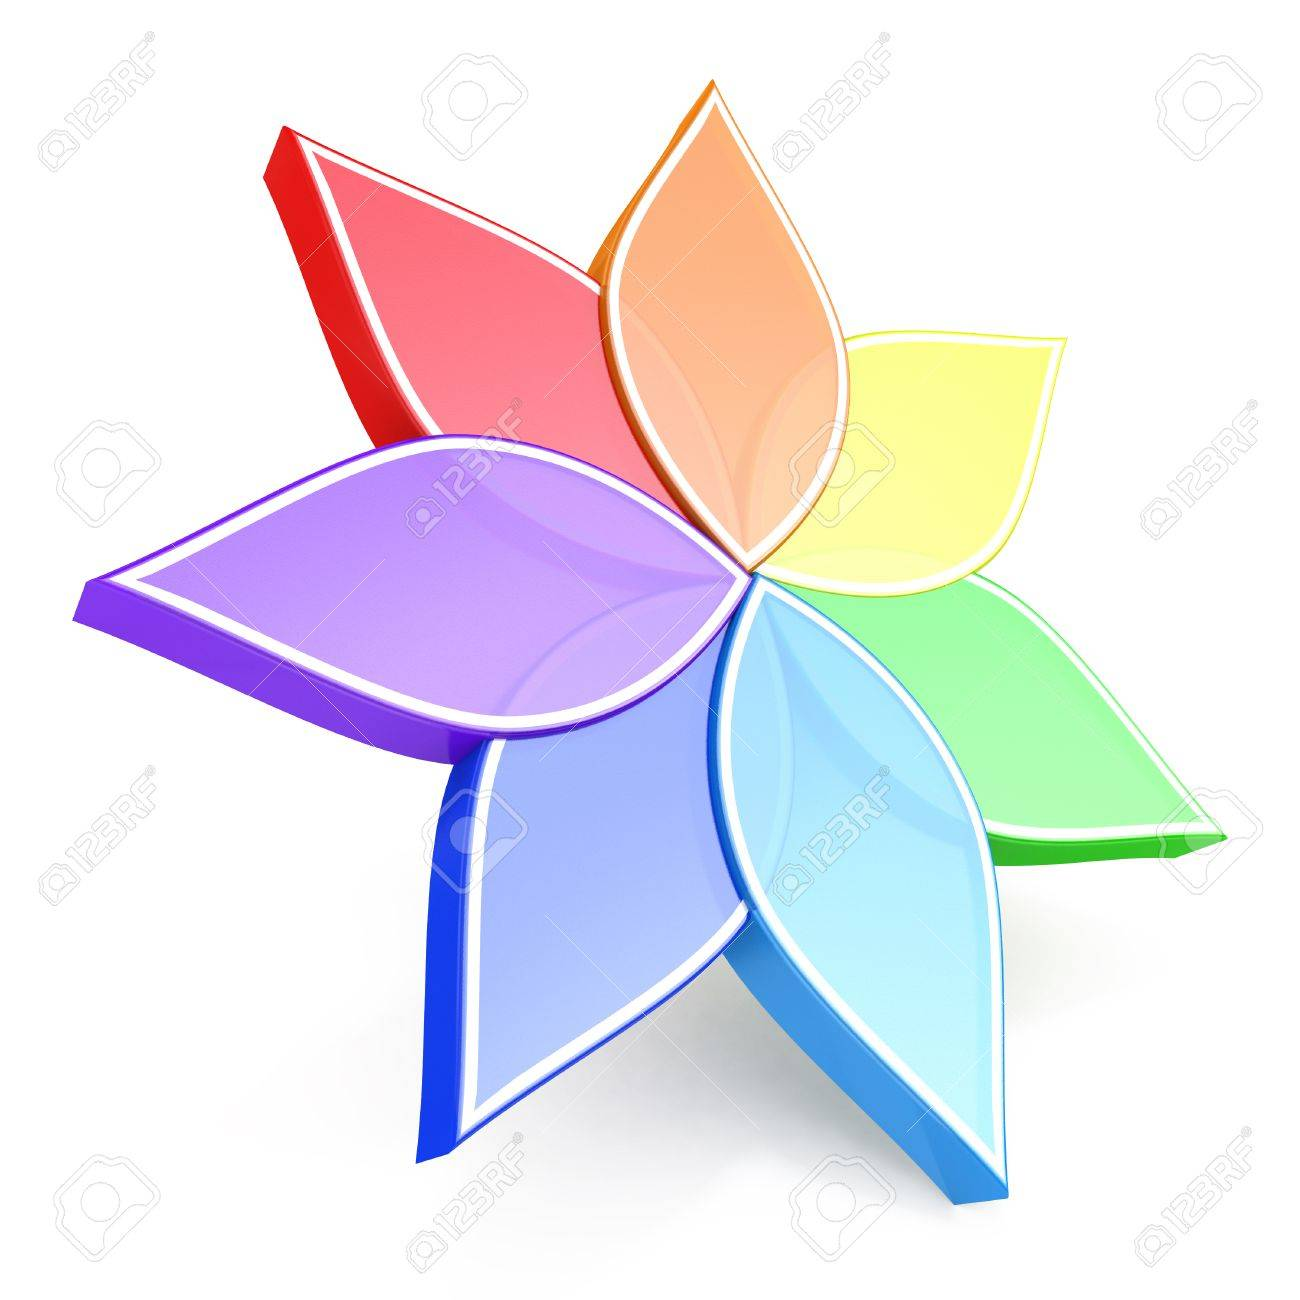 Flower Color Wheel 3d In The Design Of Information Related To